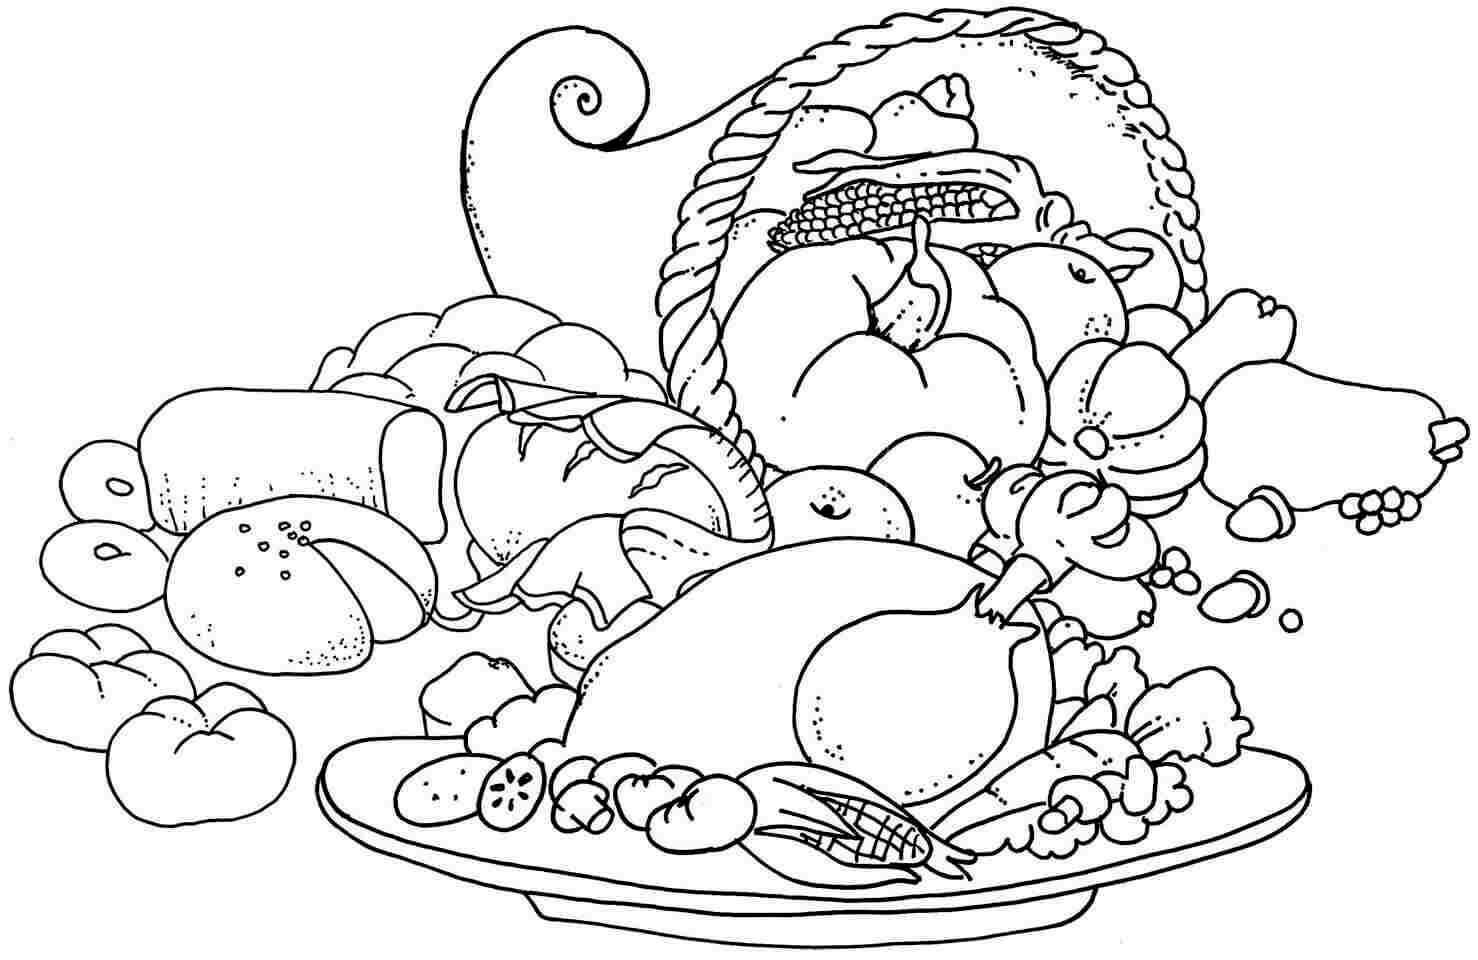 food coloring sheets free printable food coloring pages for kids sheets coloring food